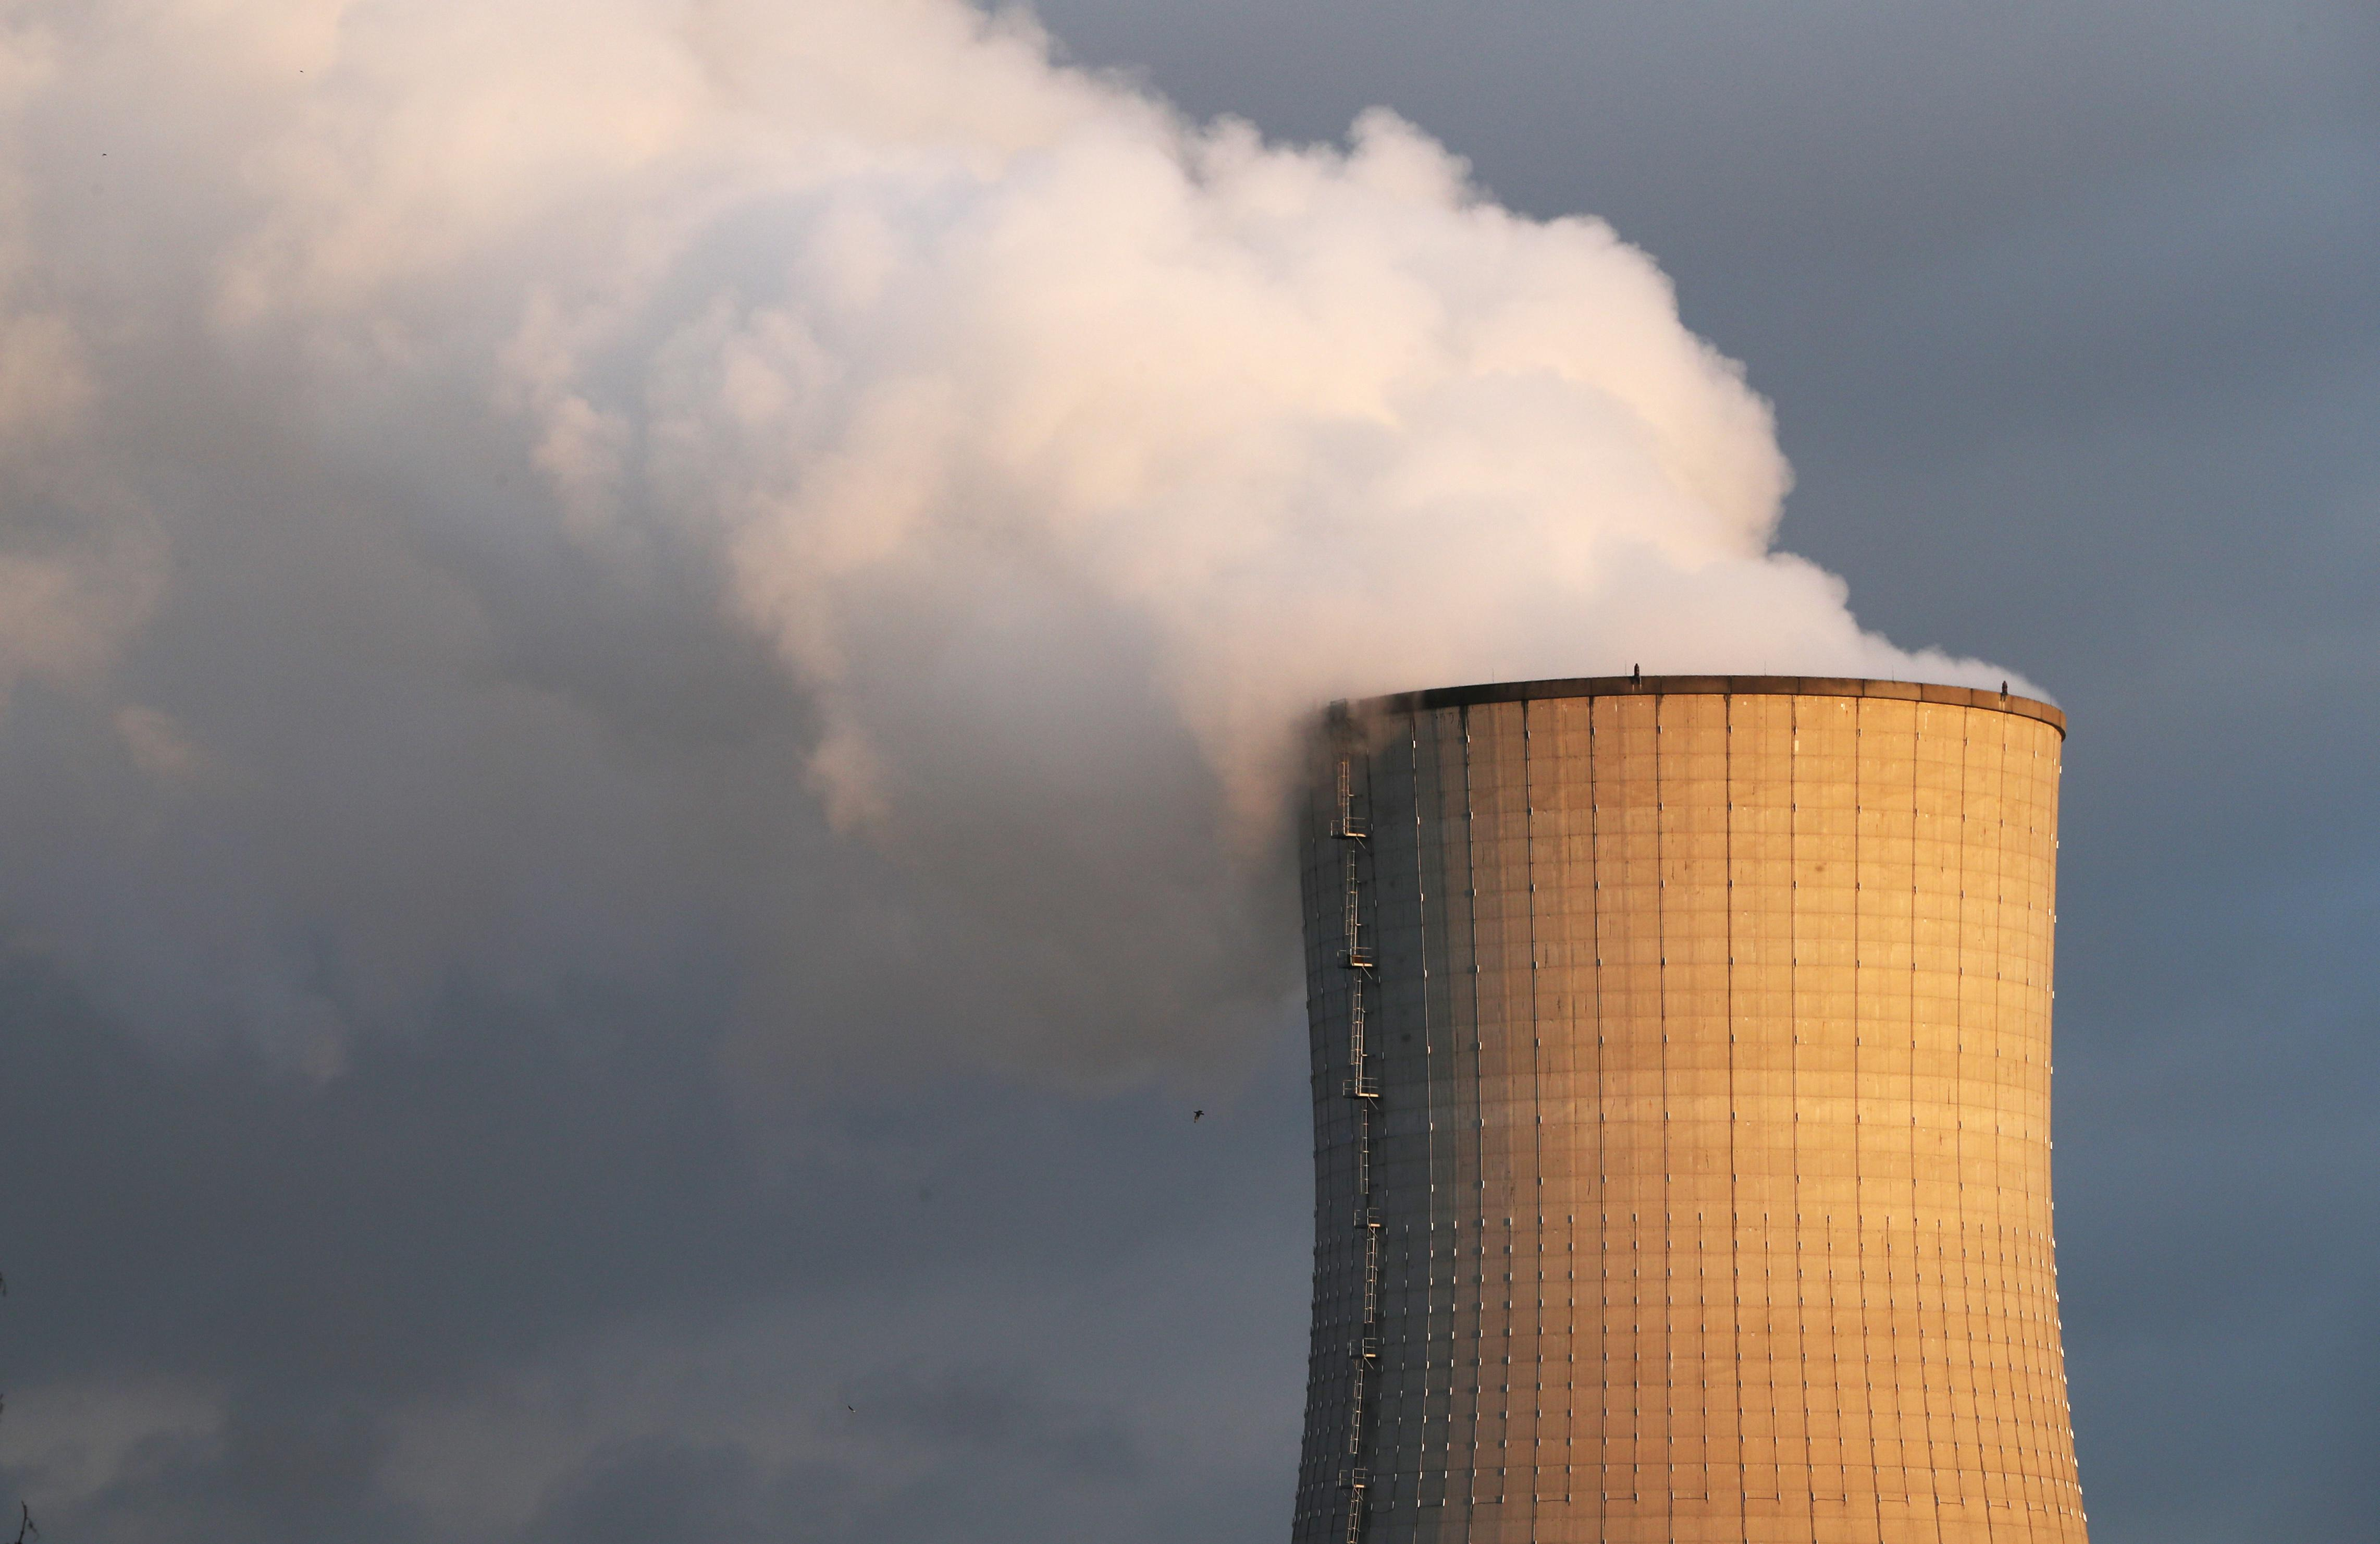 Emissions need to be halved to avoid 3C warming: scientists